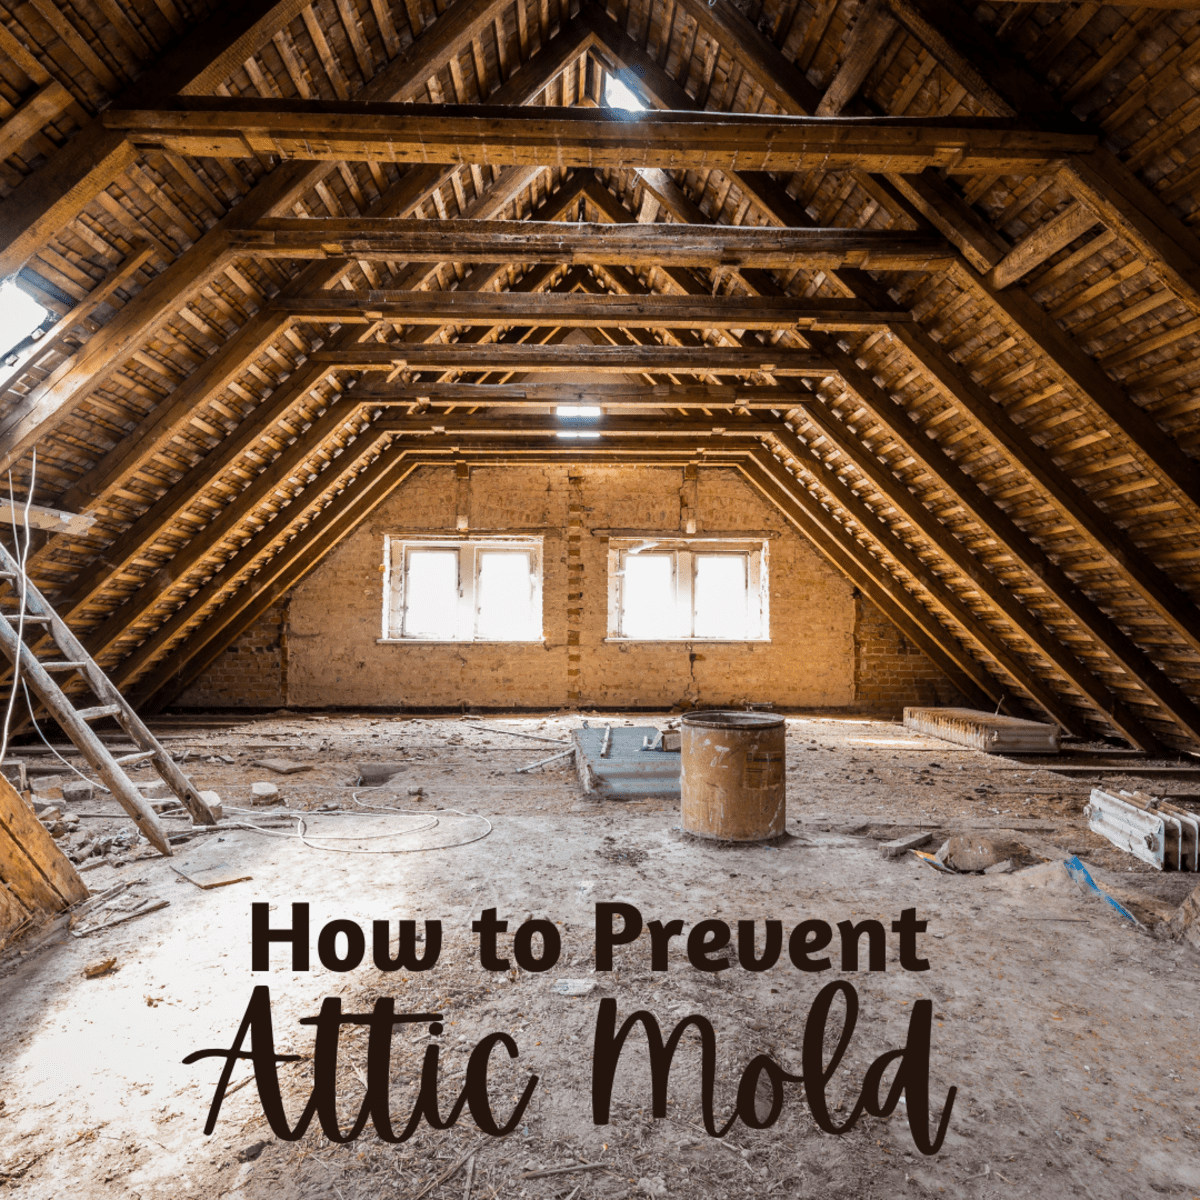 How to Prevent Attic Mold From Growing If It's Not Too Late ...